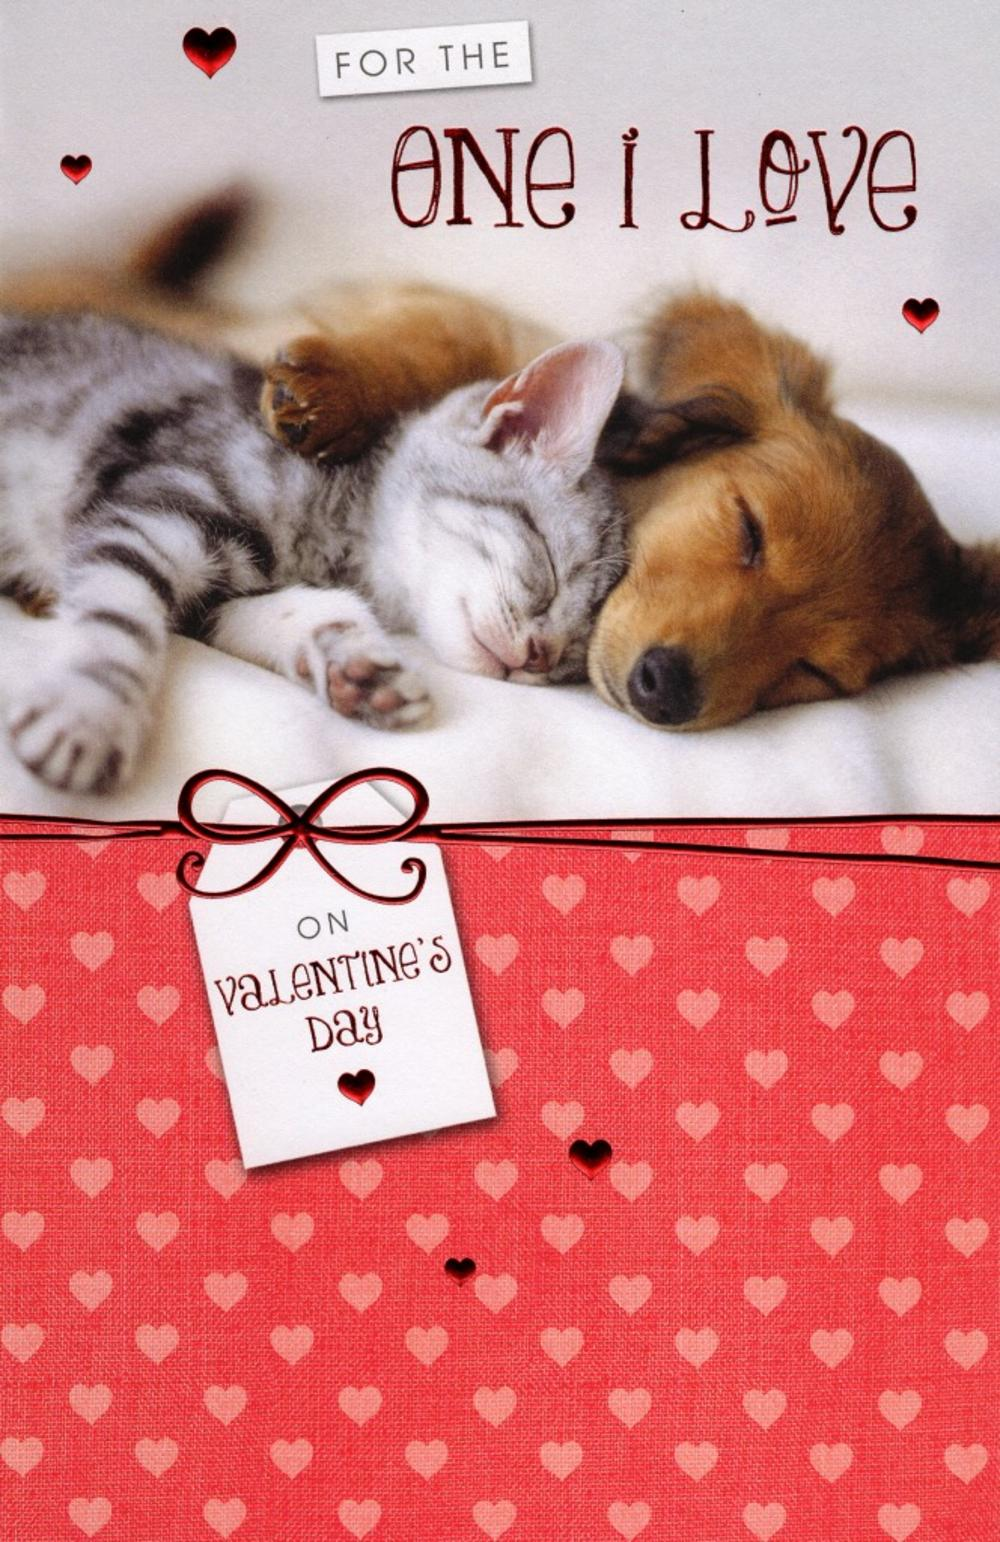 the one i love cat dog valentines day card - Dog Valentines Day Cards